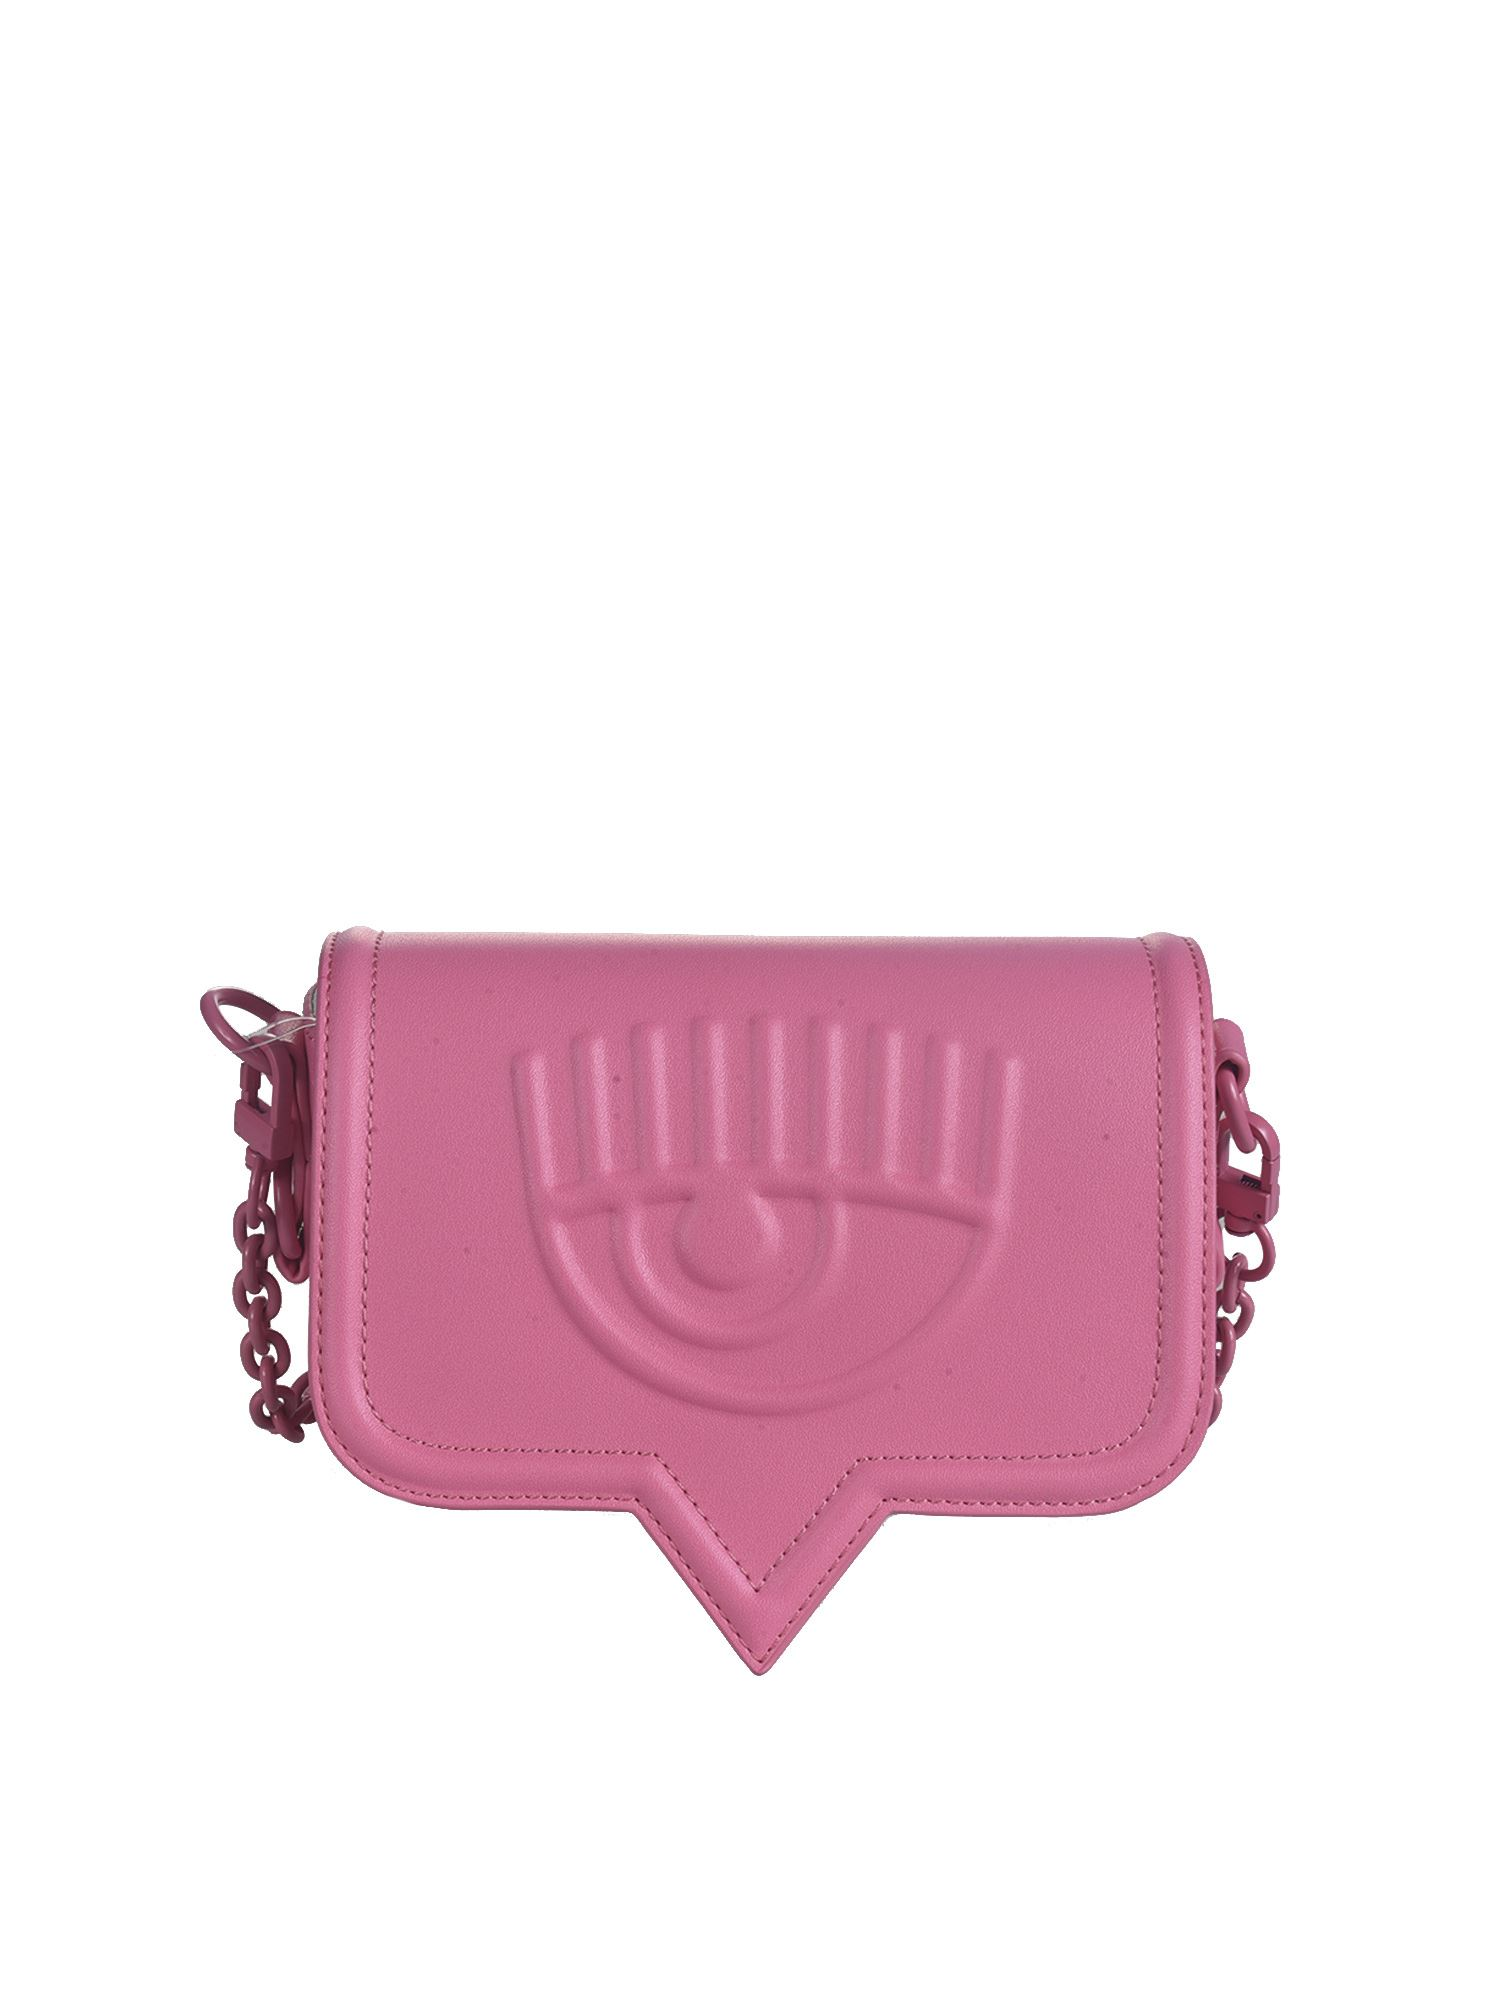 Chiara Ferragni EYELIKE SMALL SHOULDER BAG IN PINK